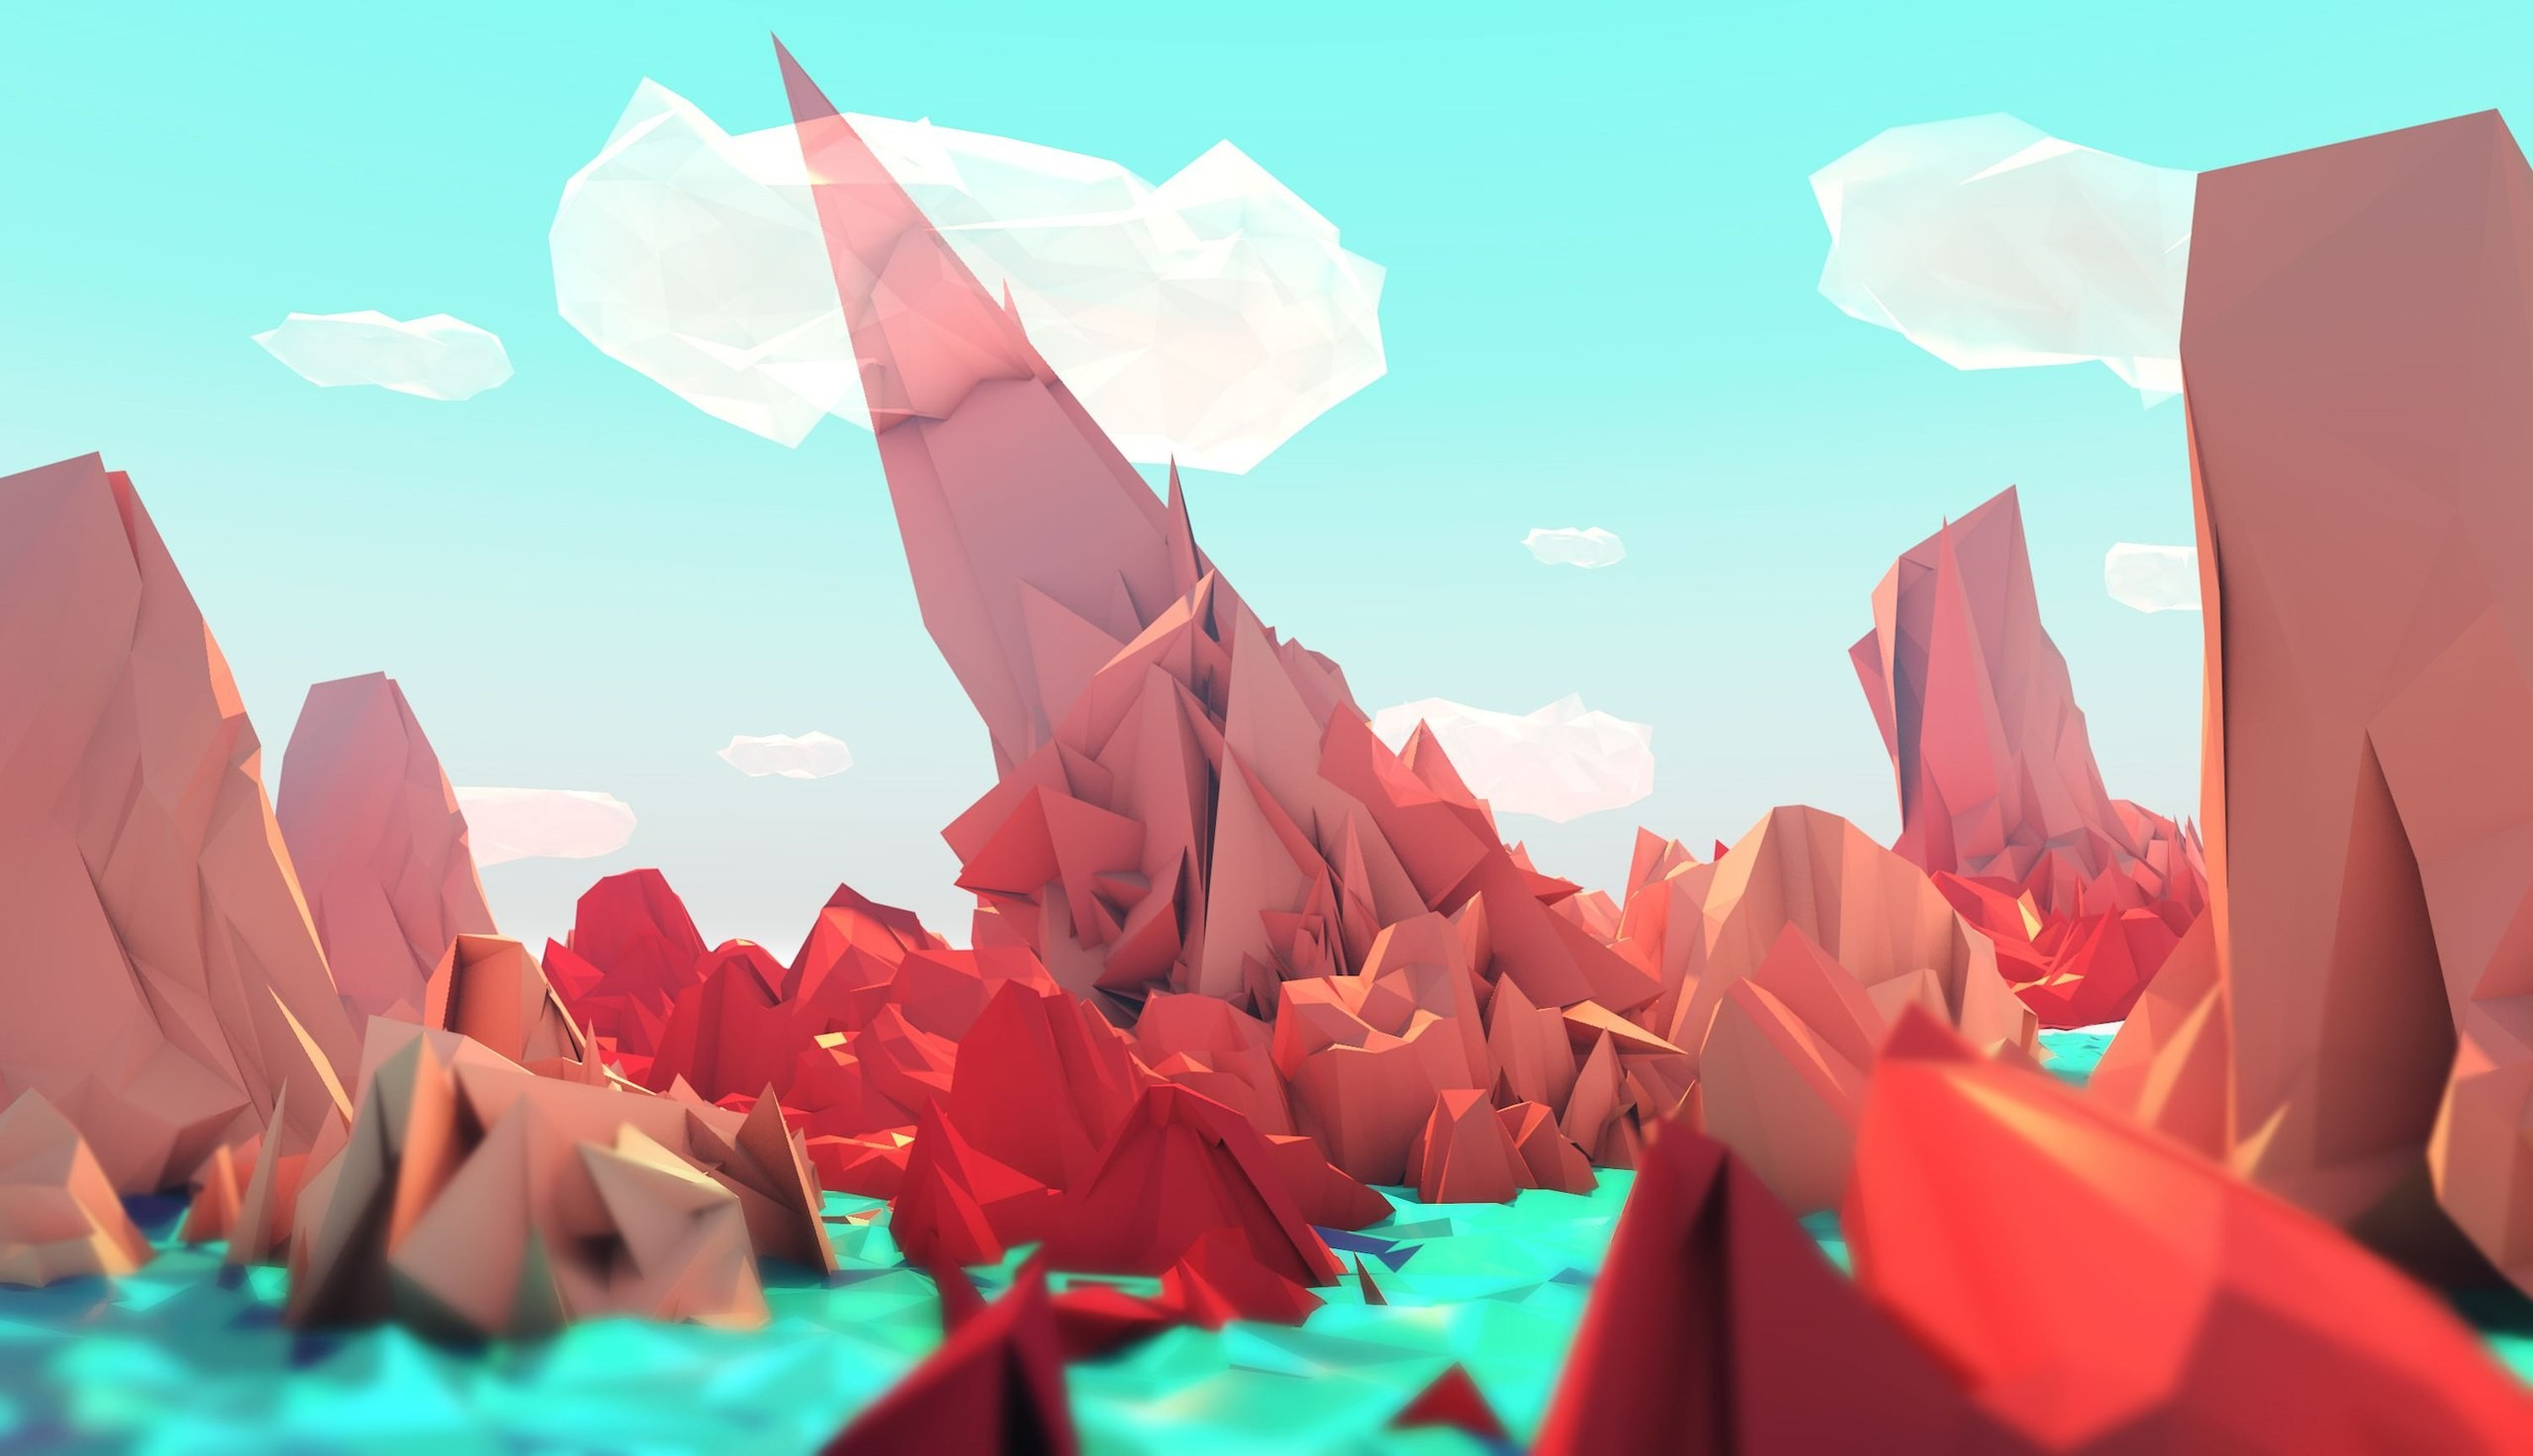 Res: 2560x1472, Low poly style wallpaper